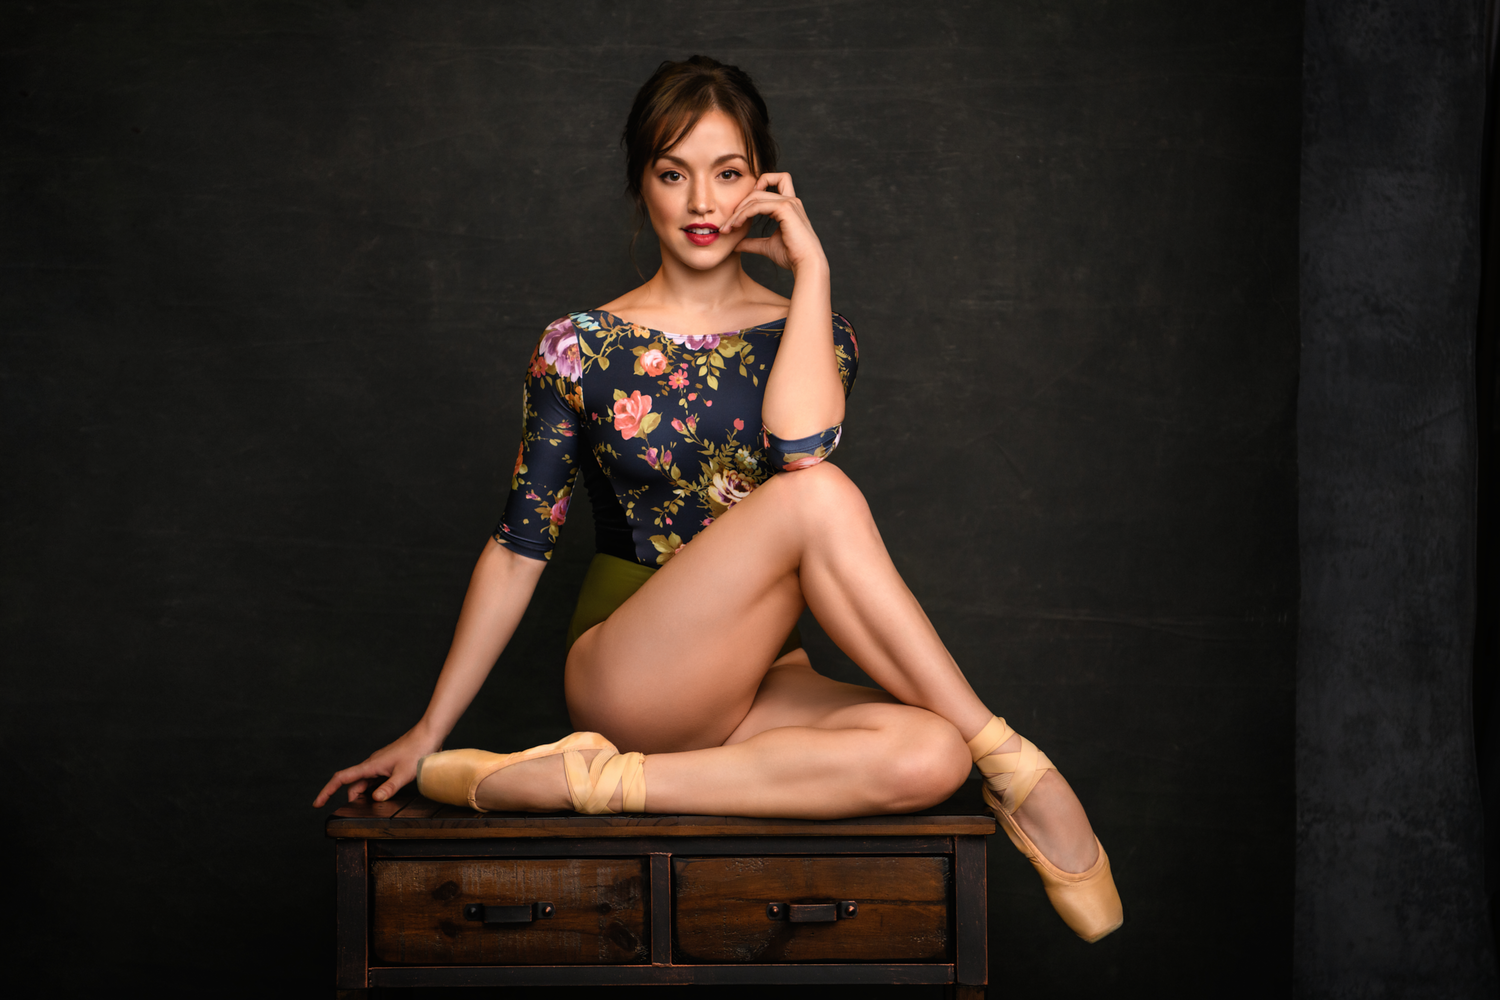 Ballet Hands by Blake Aghili